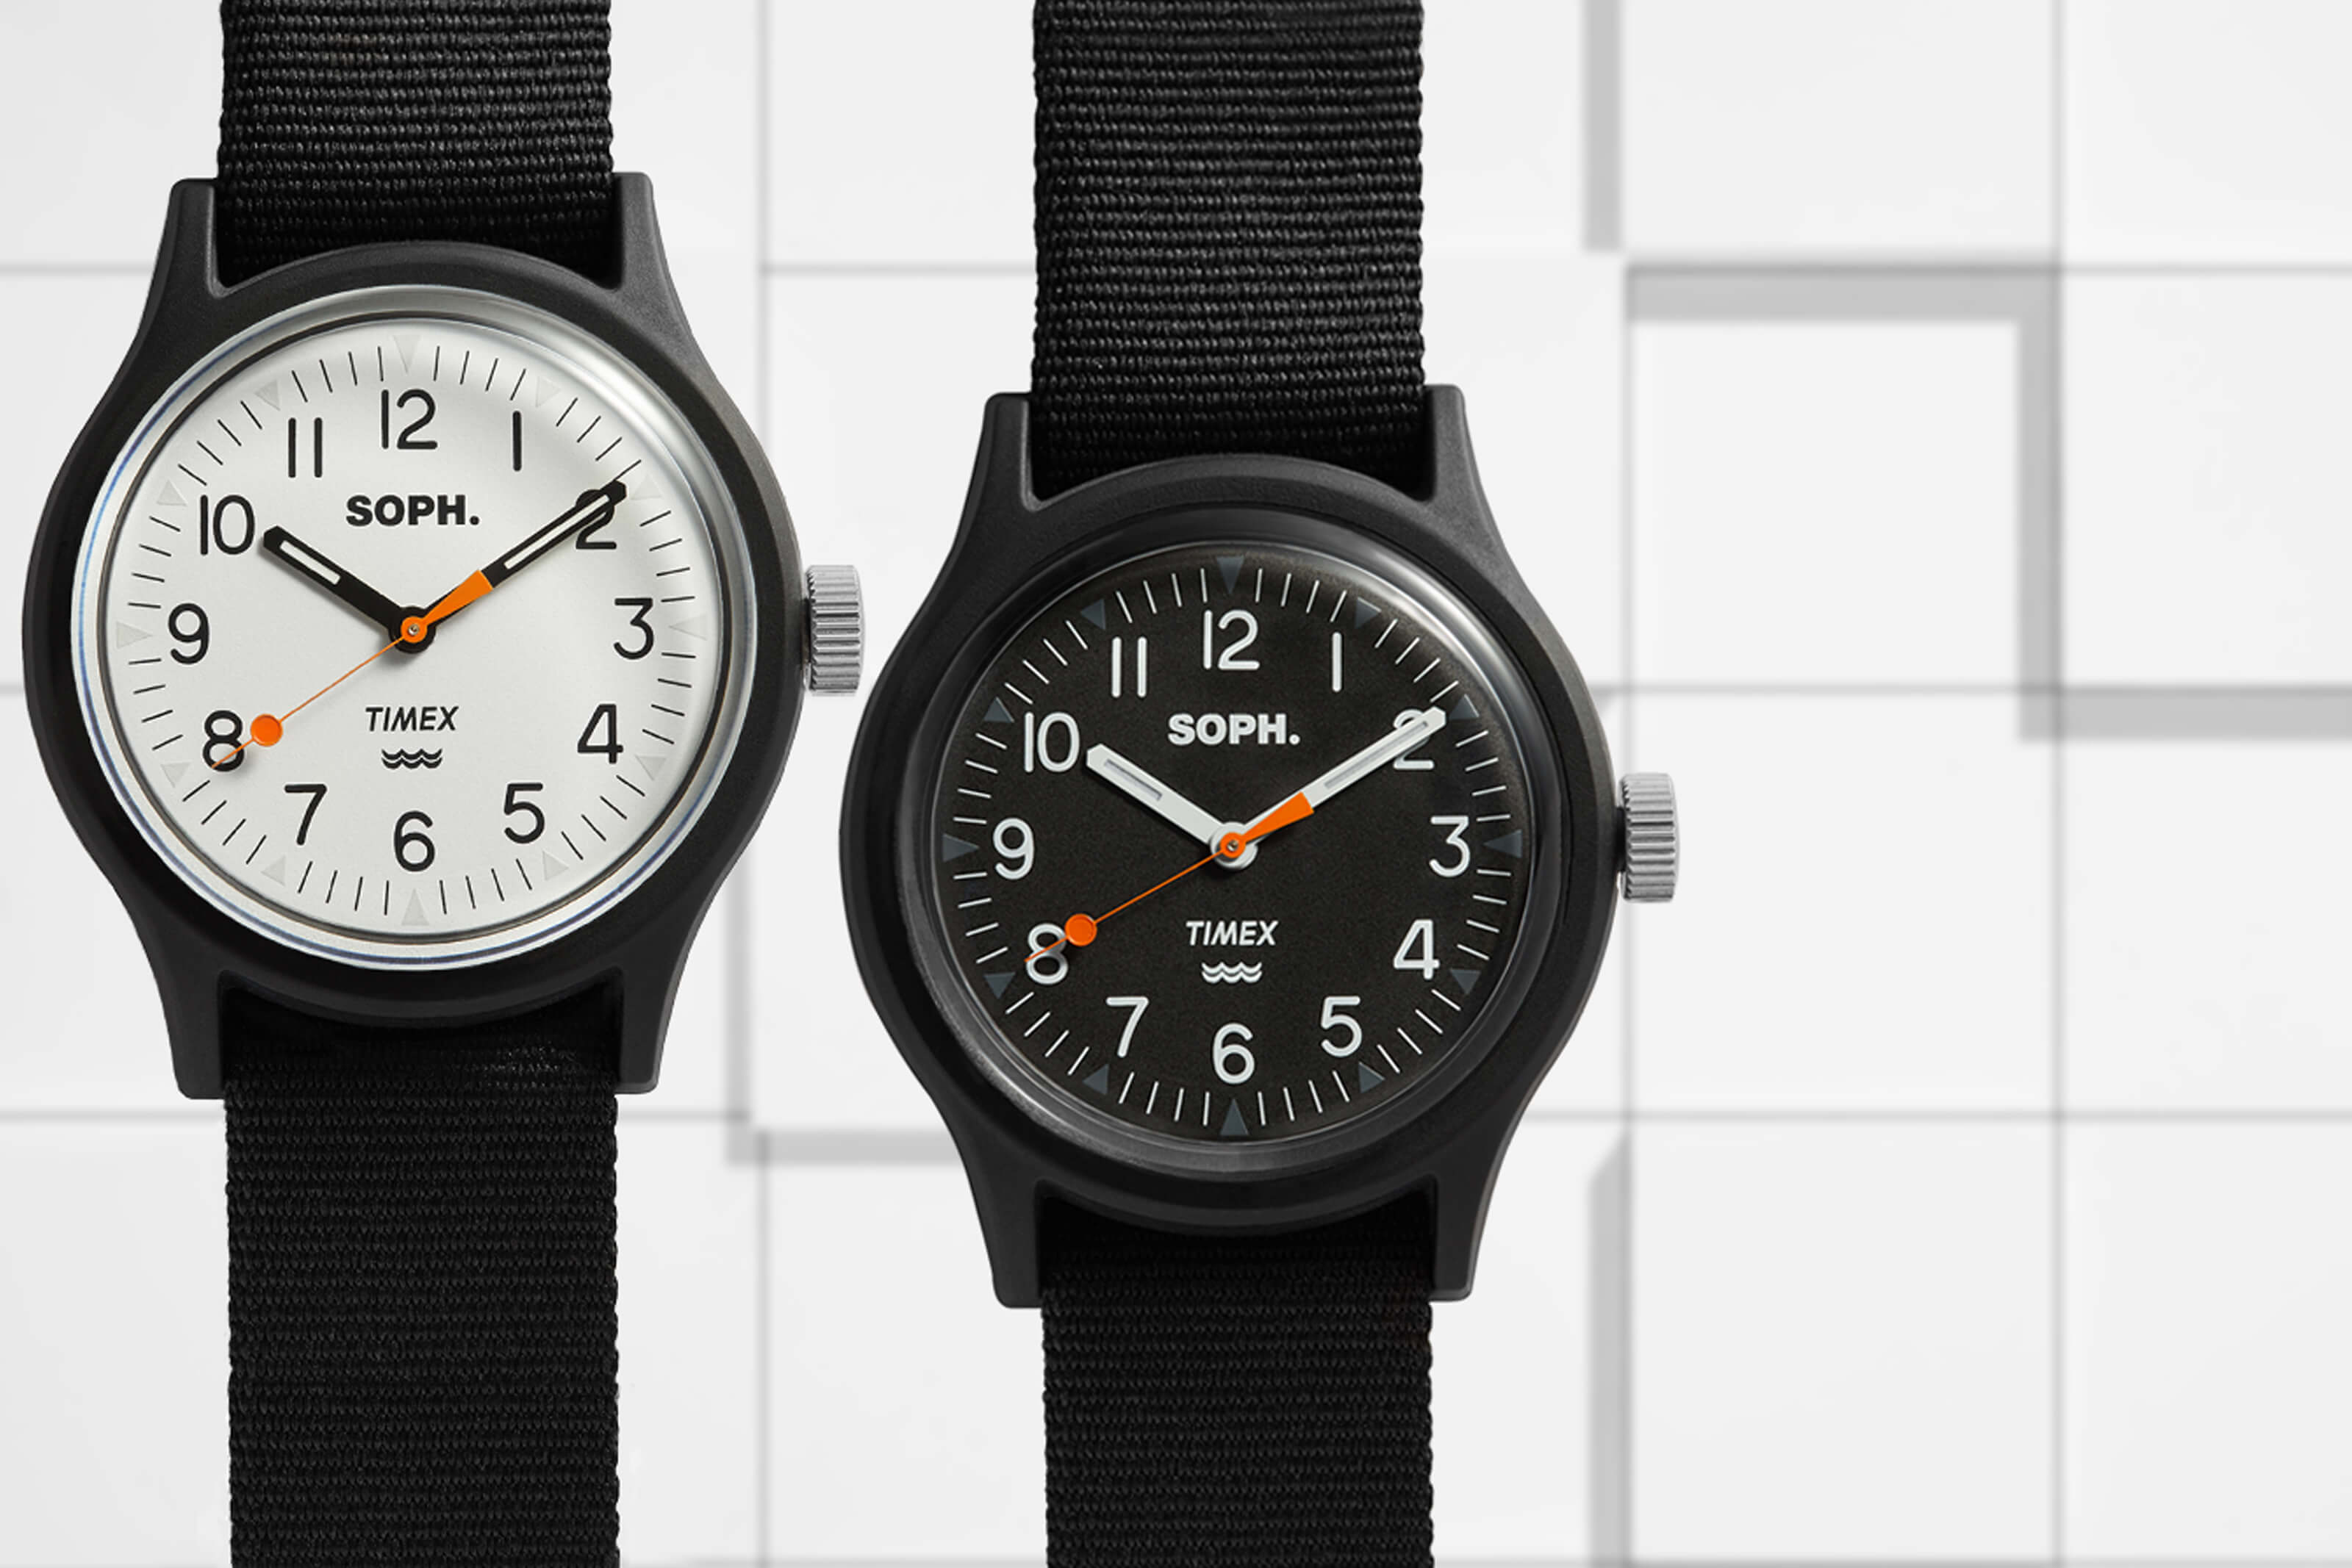 Japan's SOPHNET Celebrates 20th Anniversary with END. x Timex MK1 Watch Collaboration